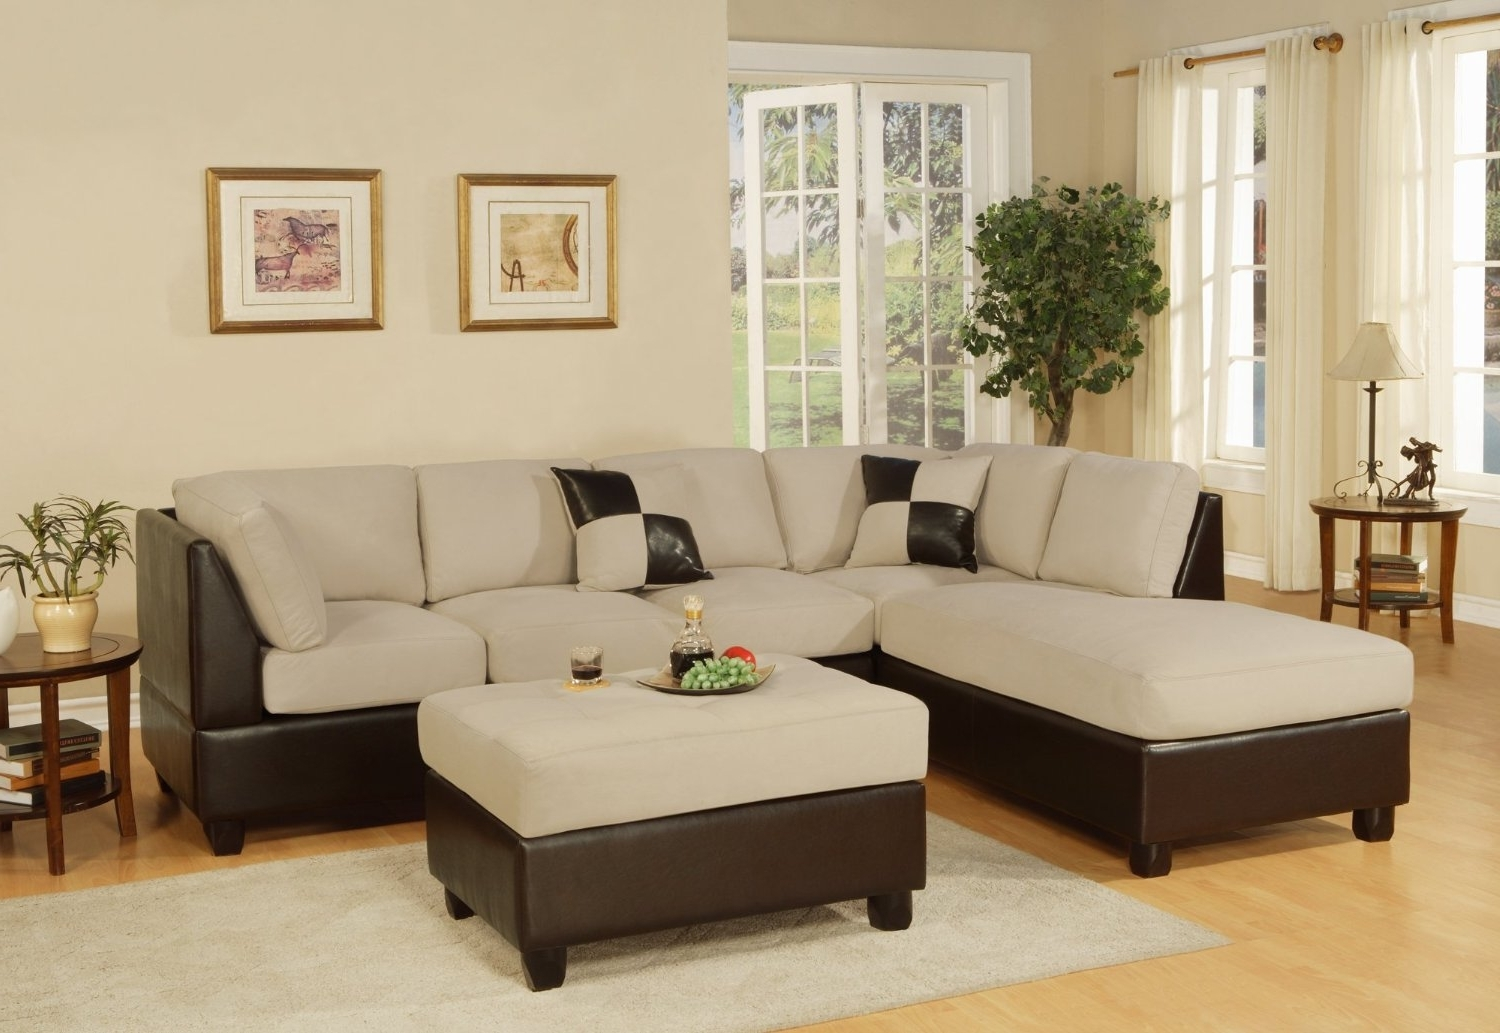 Erie Pa Sectional Sofas With Trendy Furniture : Sectional Sofa 80 X 80 Corner Sofa Extension Sectional (View 16 of 20)